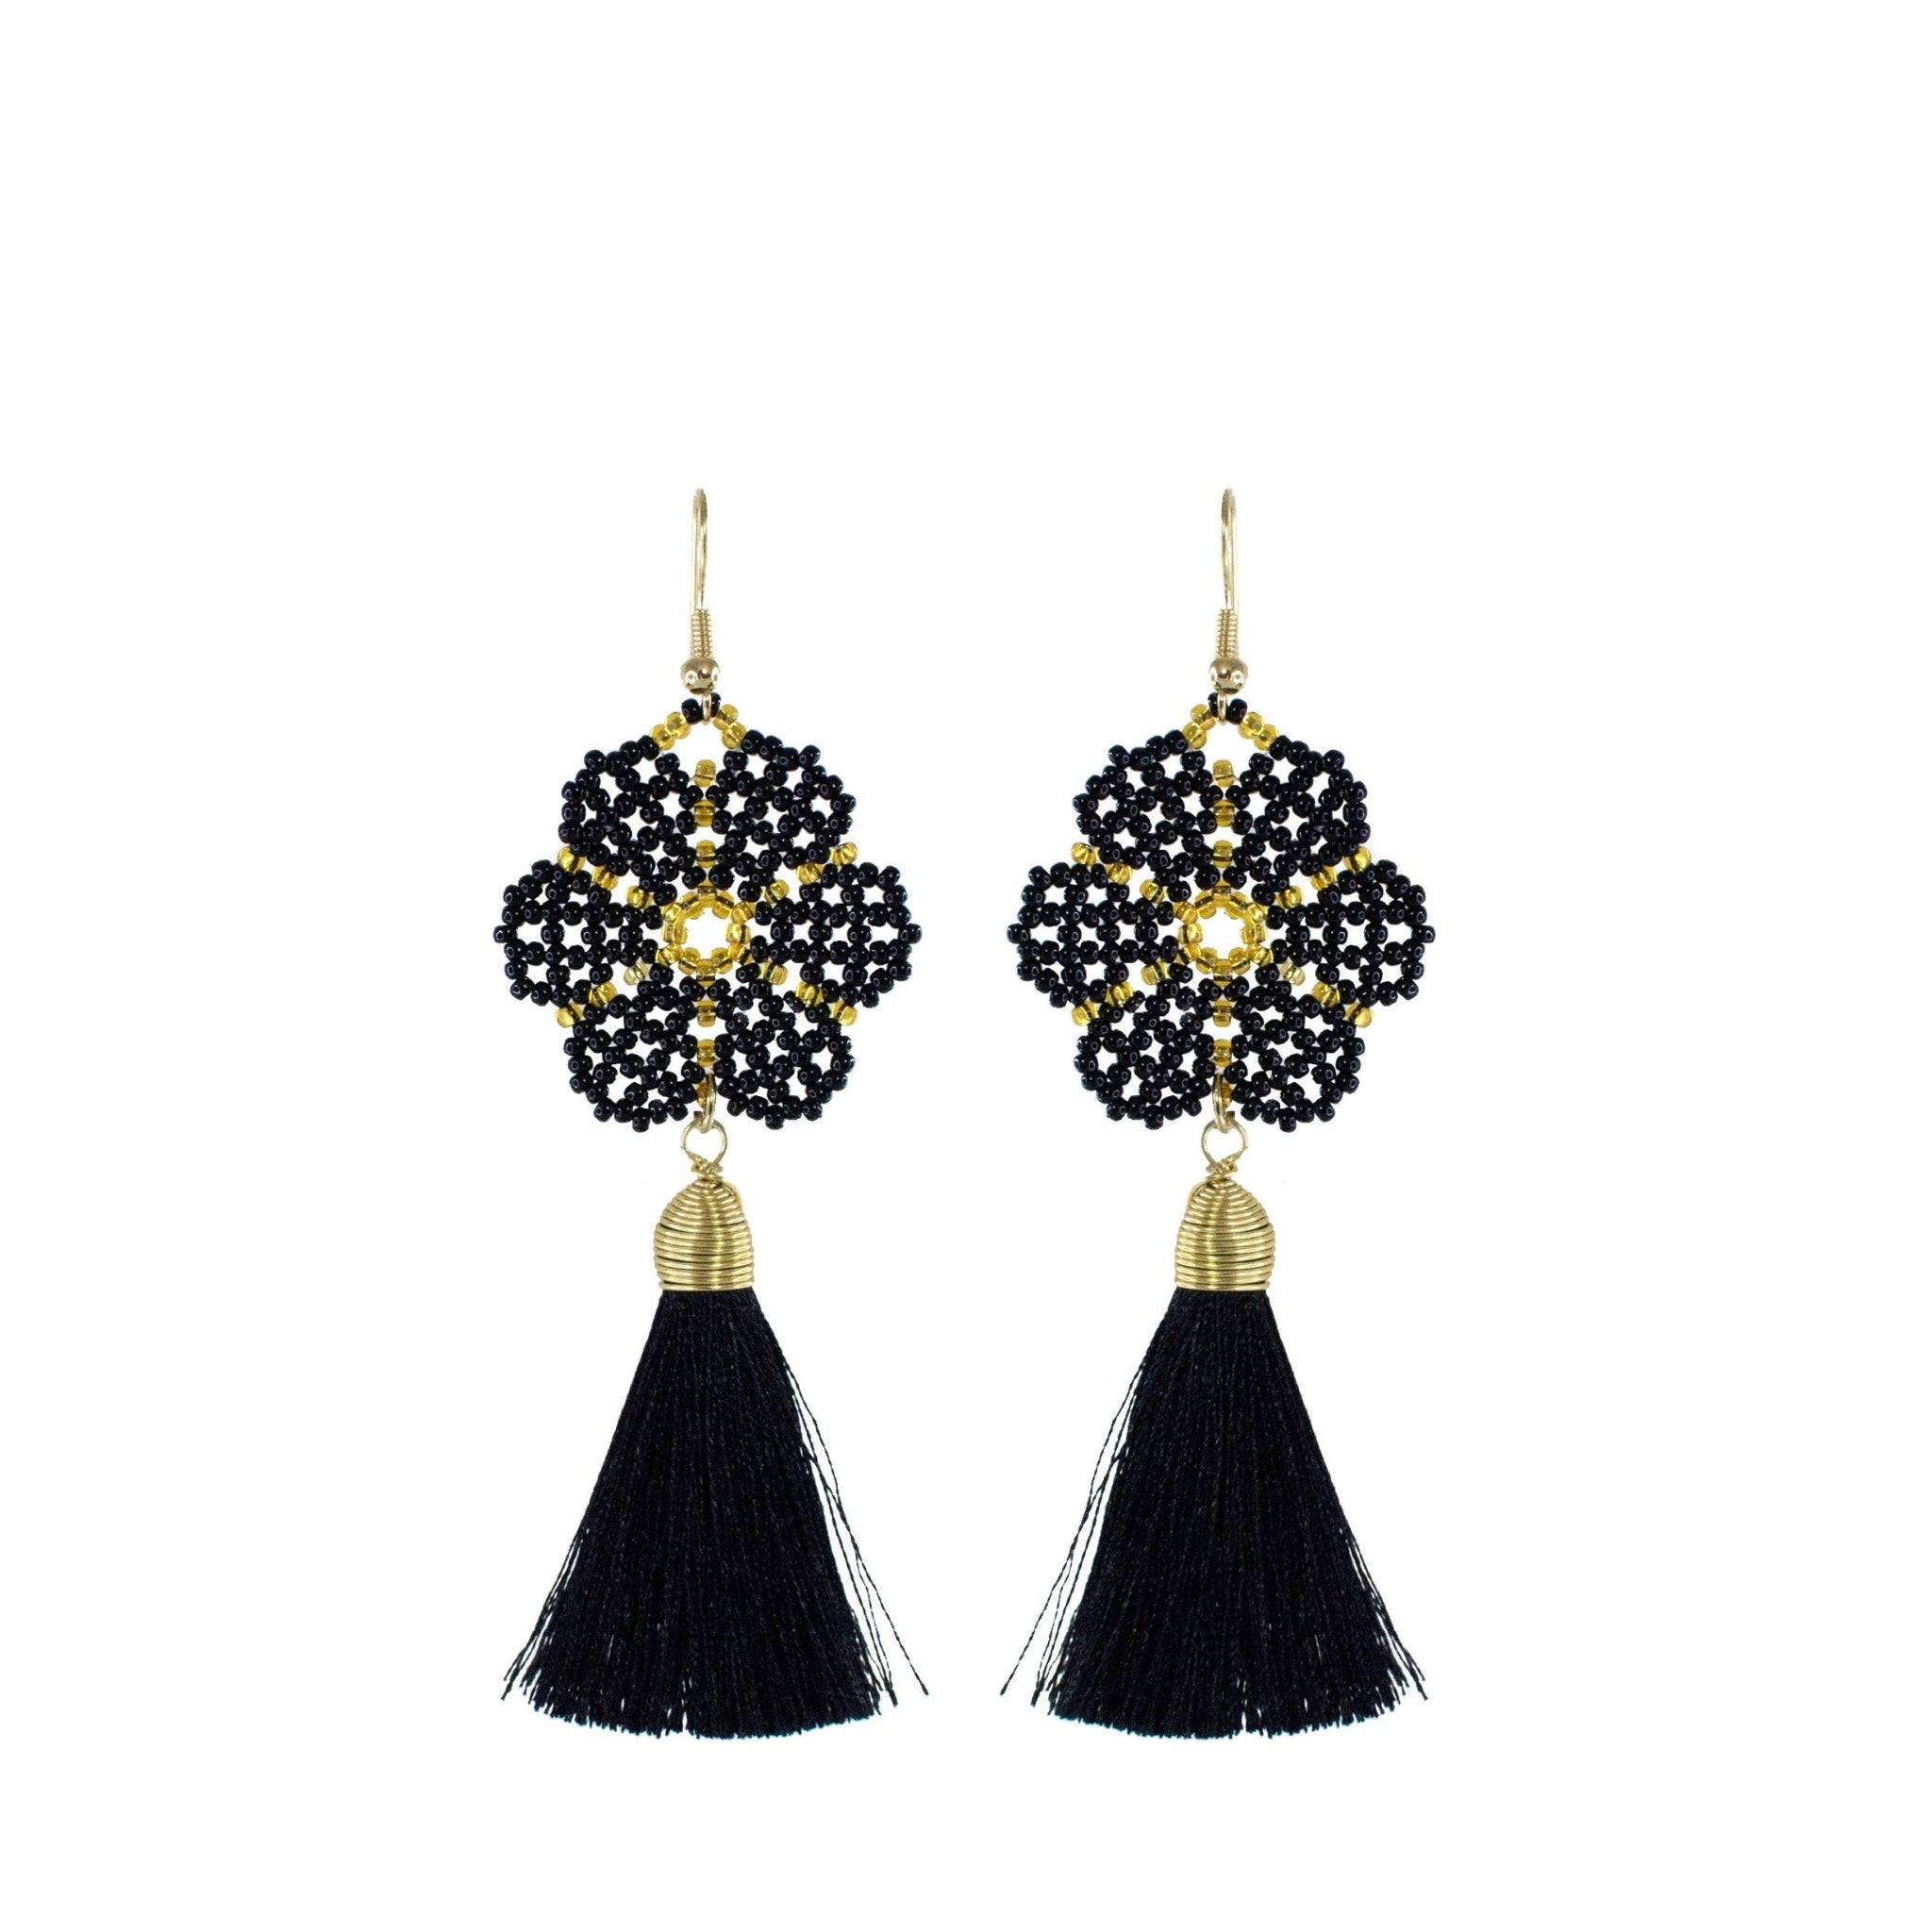 Huichol and Silk Earrings Black 1